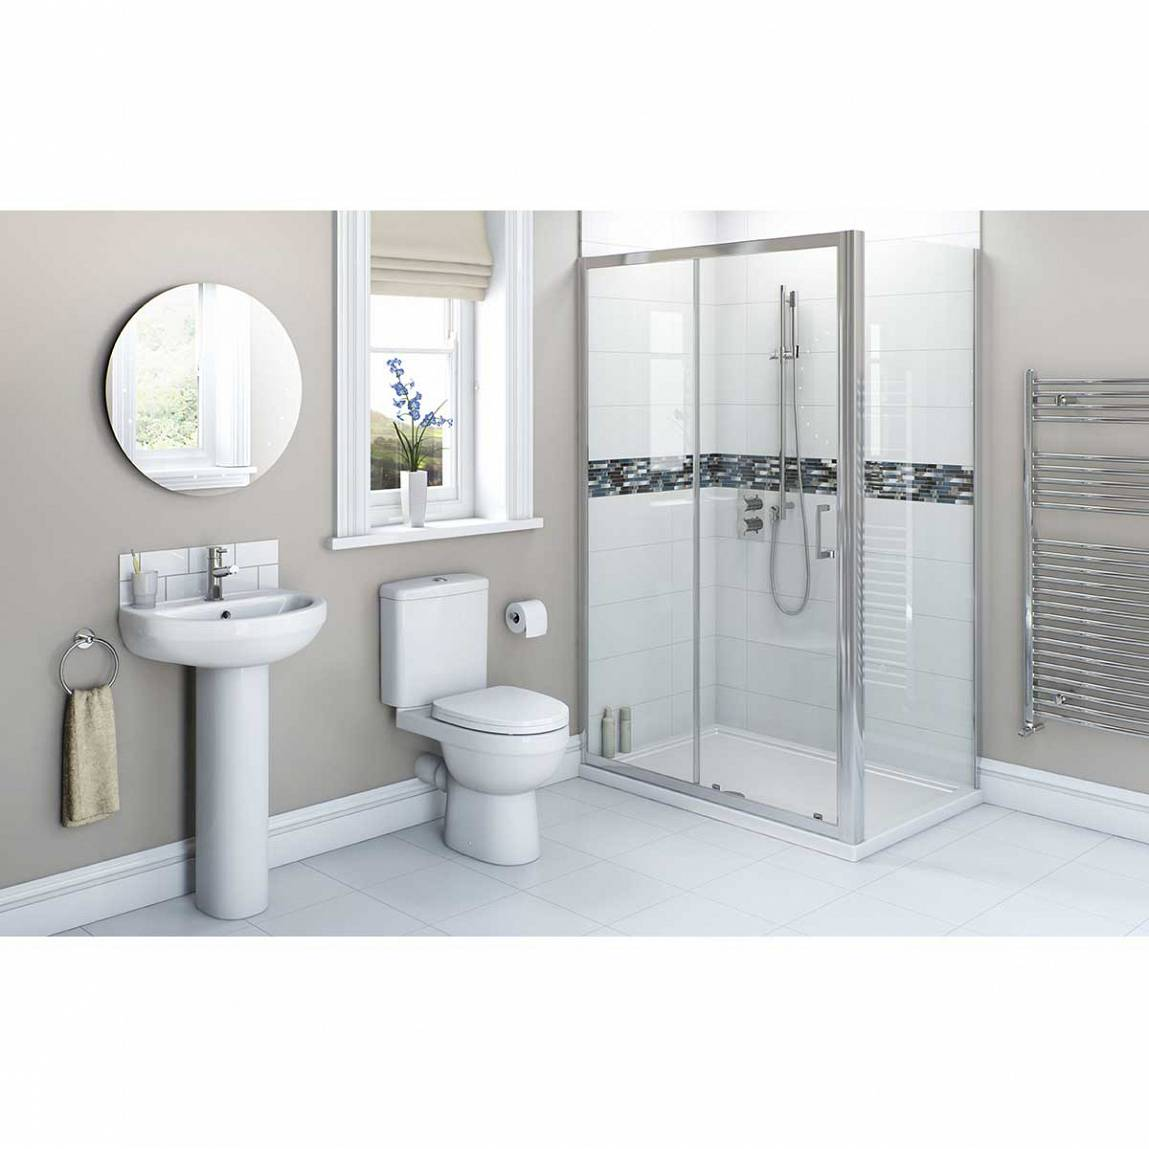 Image of Energy Bathroom set with 1100x760 Sliding Enclosure & Tray